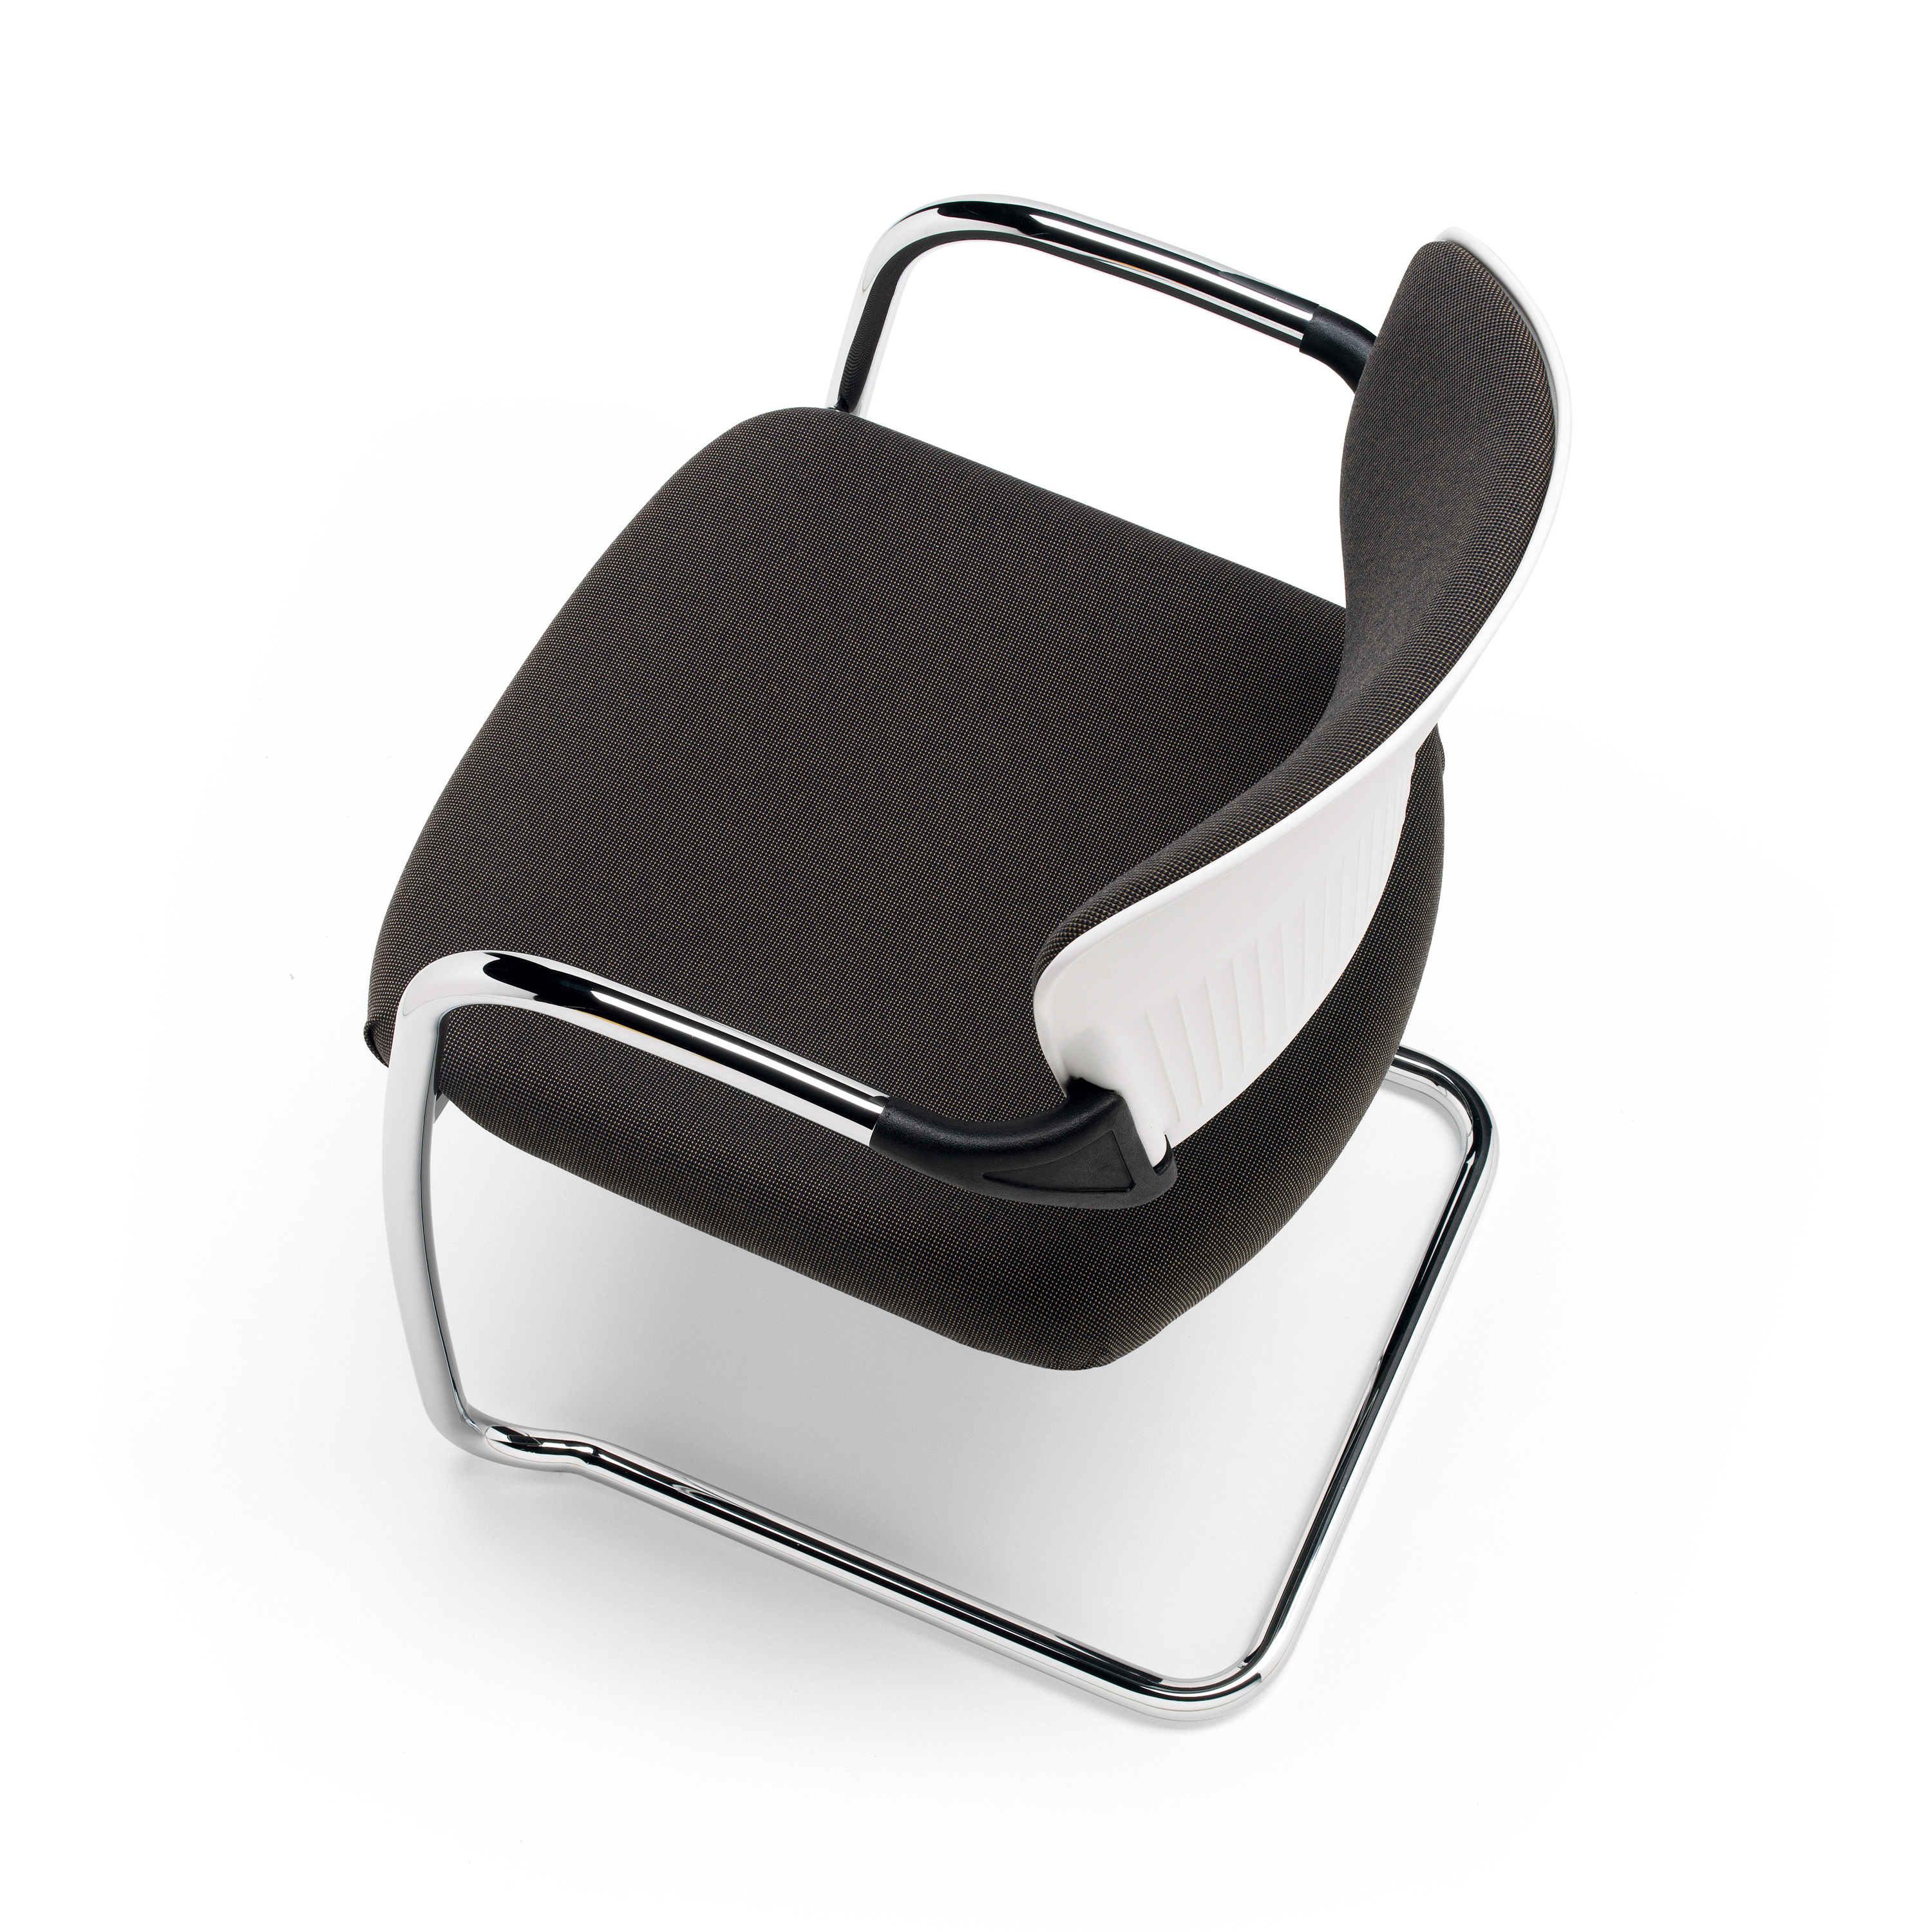 13S_Estel_Comfort&Relax_Office-chair&contract-conference_Cameo